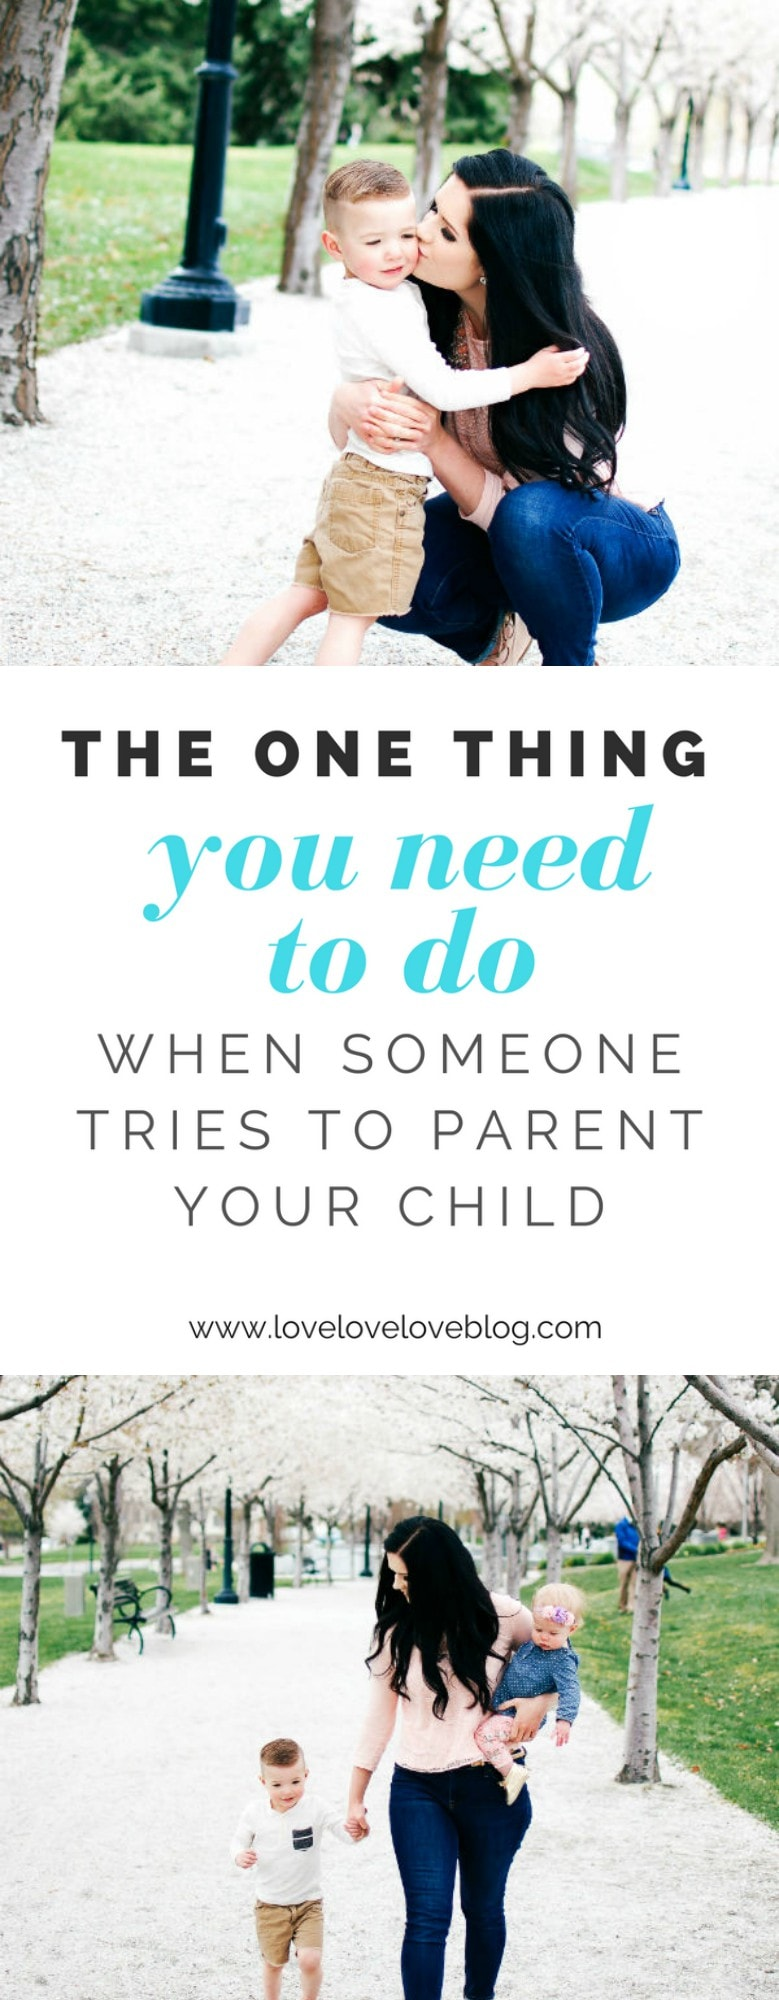 How to react to unwanted parenting advice